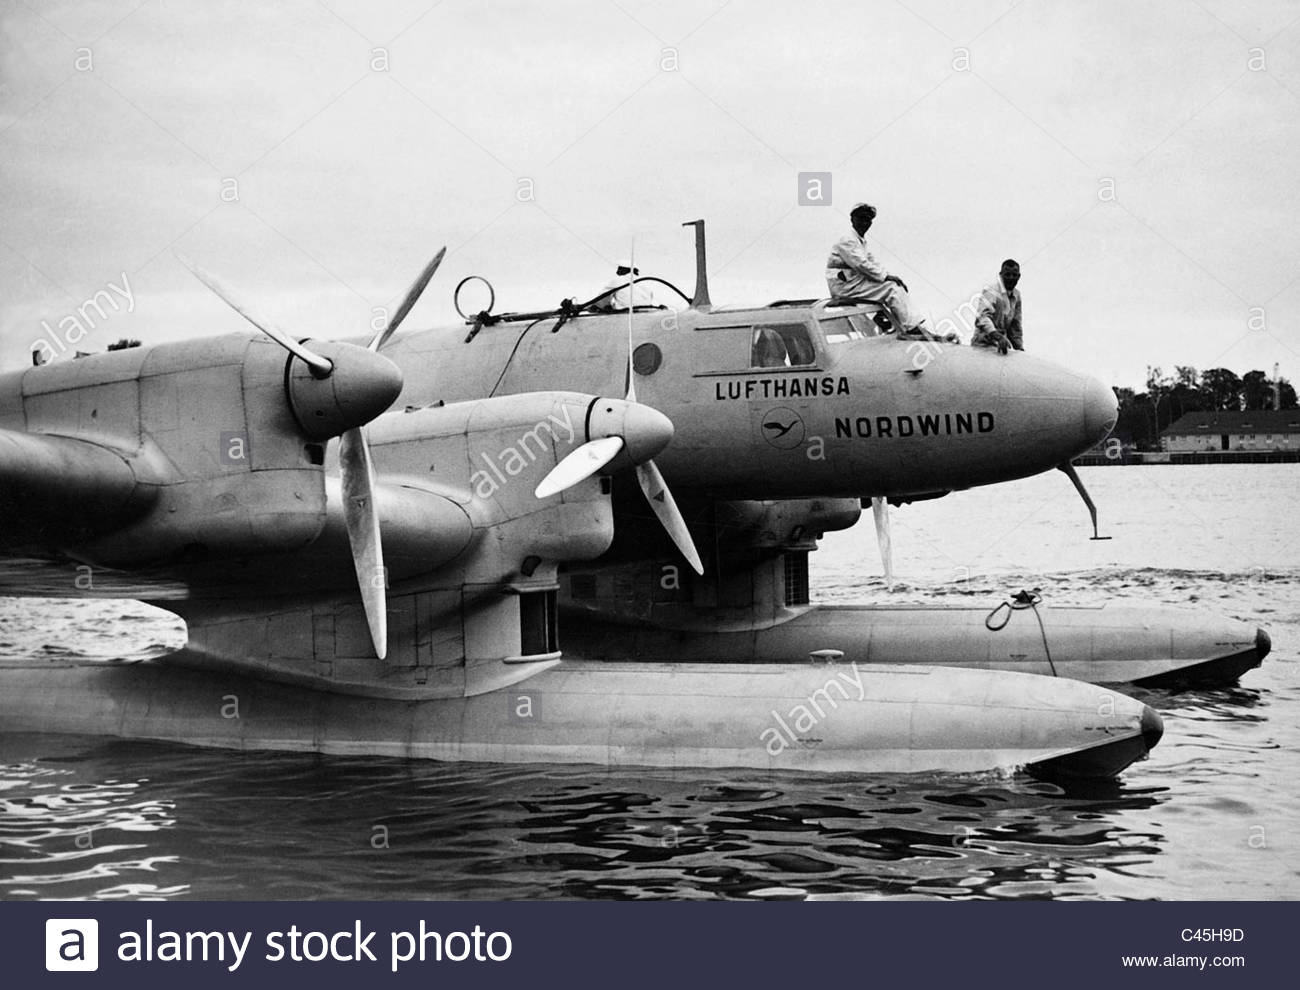 flying-boat-ha-139-north-sea-of-blohm-und-voss-aircraft-gmbh-on-the-C45H9D.jpg